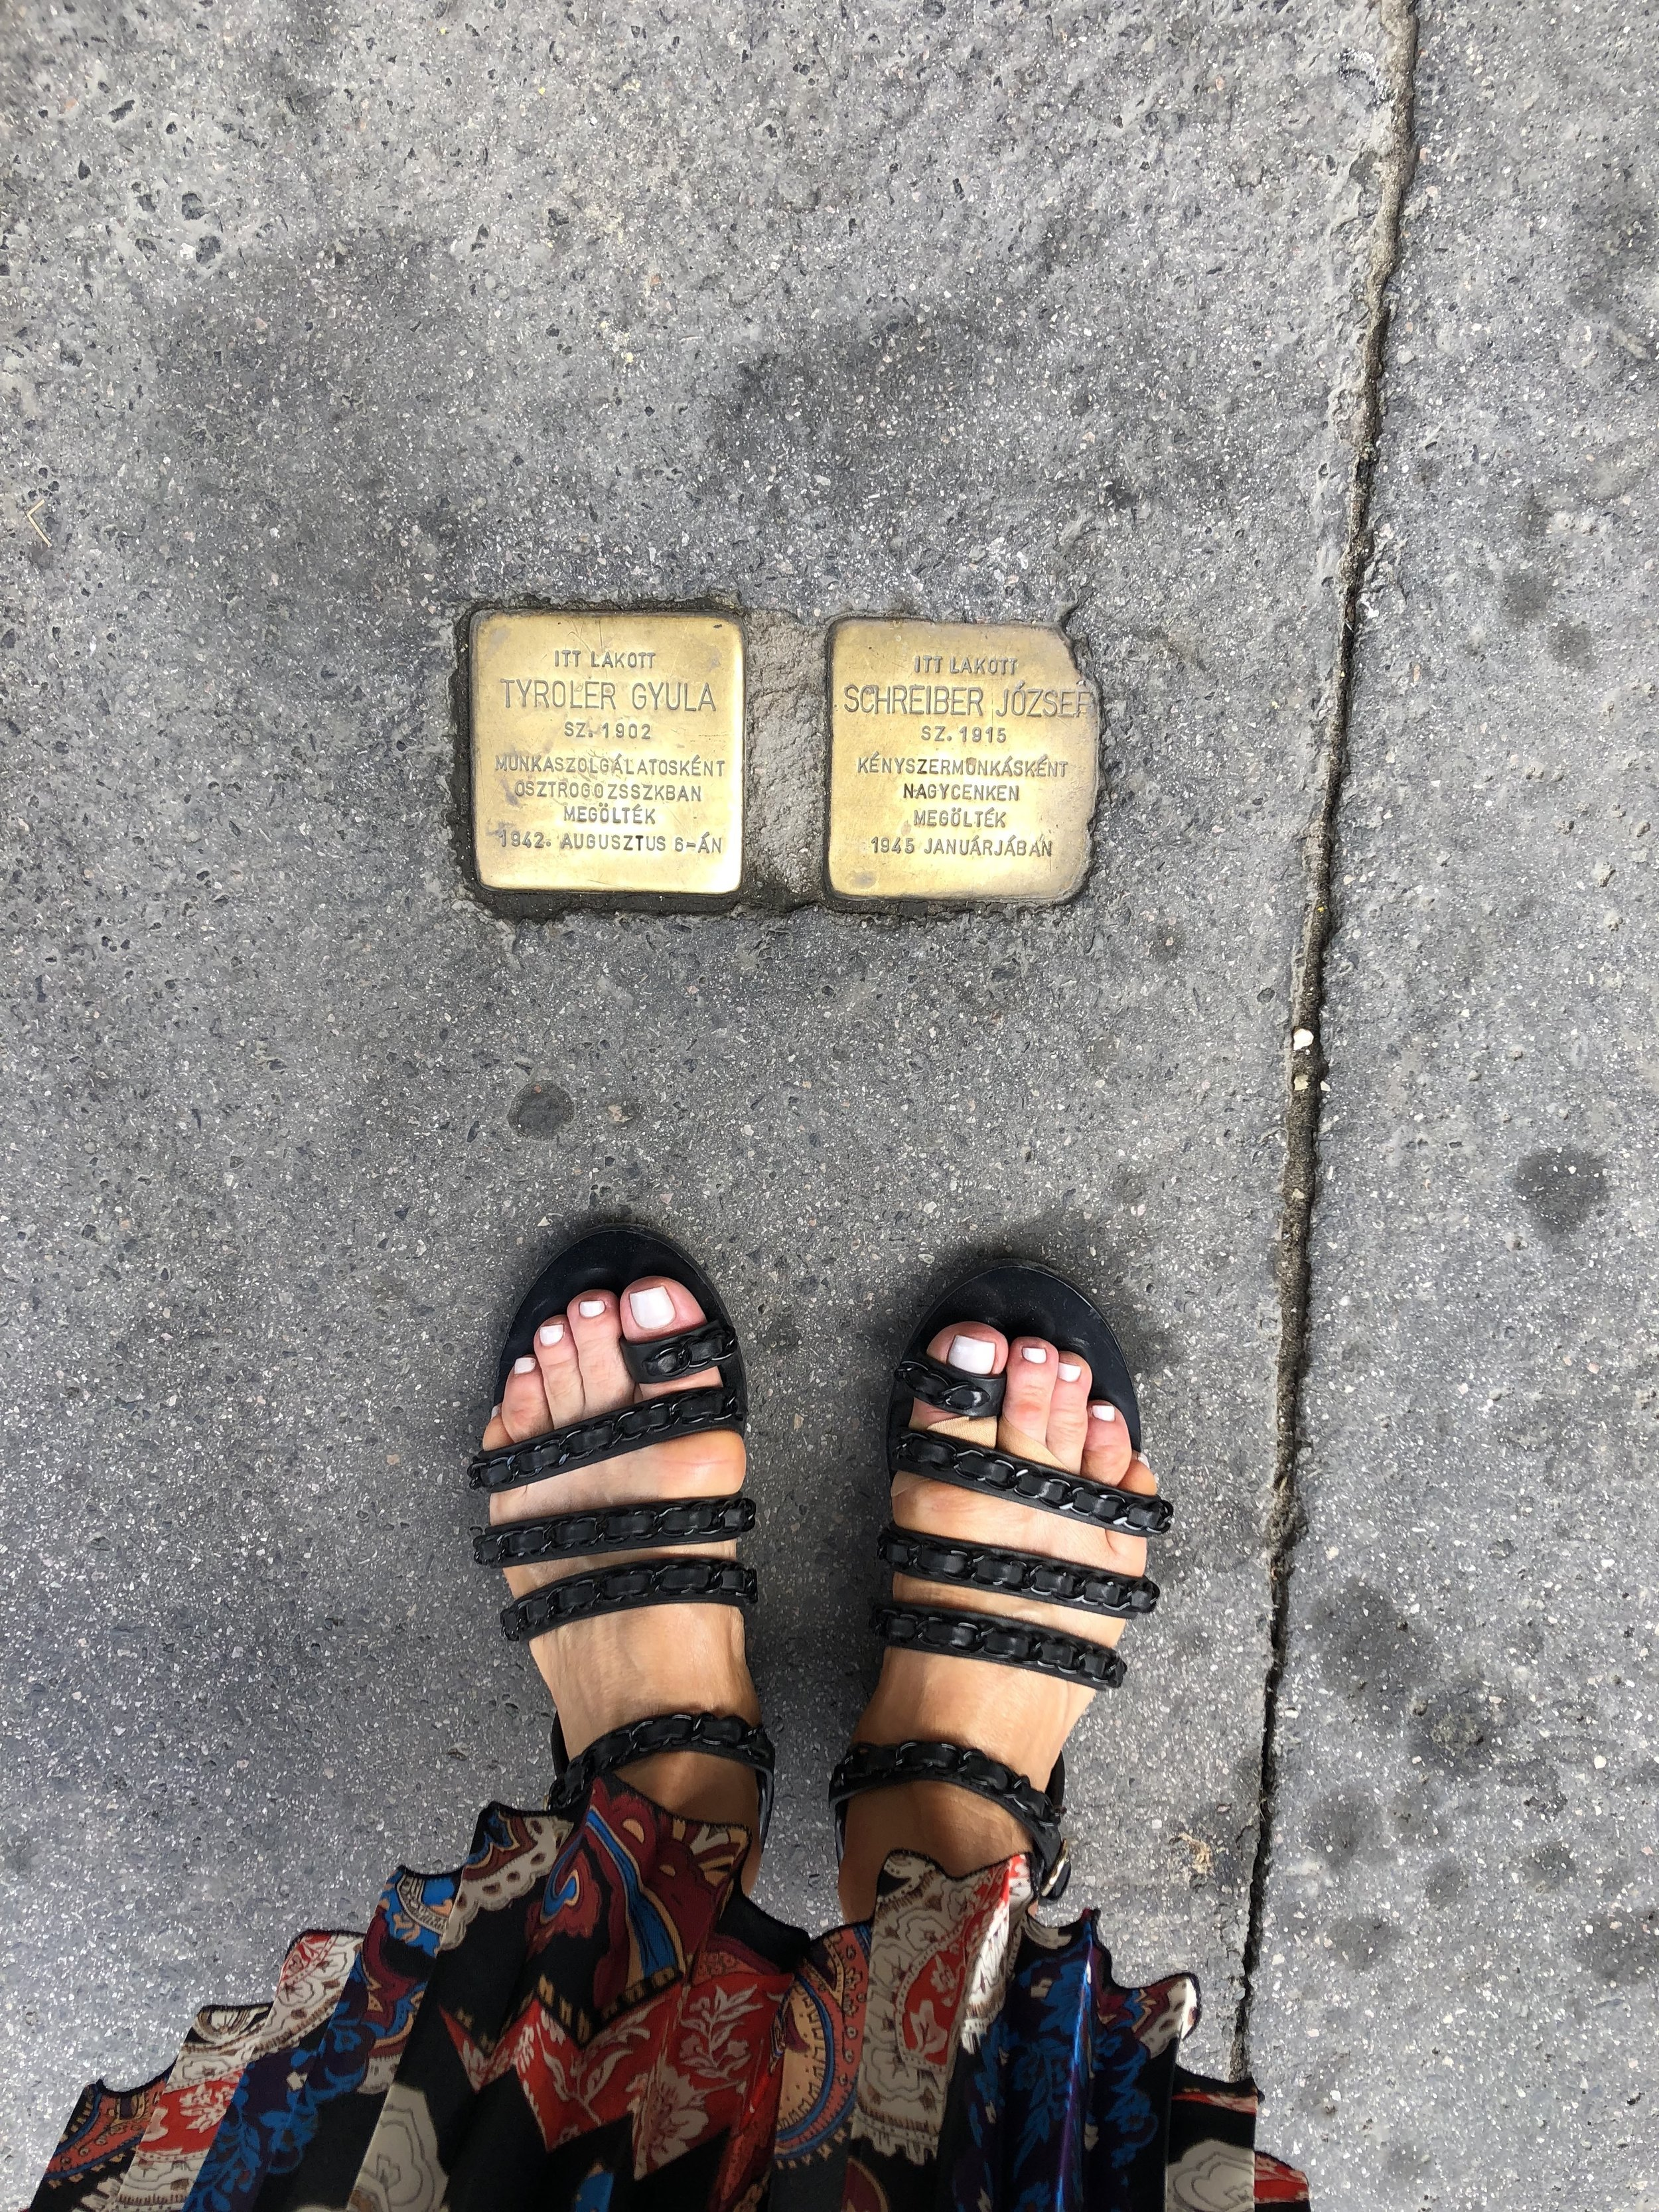 Standing in front of plaques marking the names of the families that lived there before being herded off to ghettos and death camps. These are the sobering reminders of the atrocities this community bore. Chanel chain sandals,    A World Curated pleated skirt.